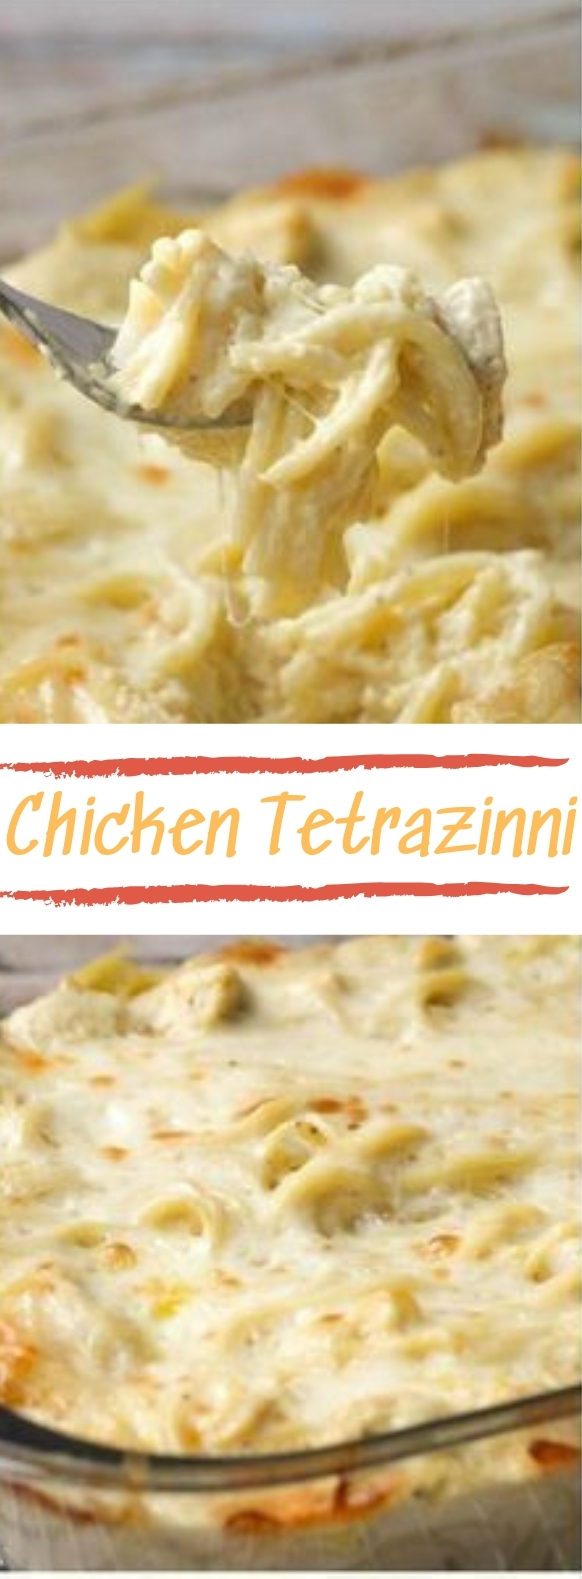 THE BEST CHICKEN TETRAZZINI #pastarecipe #deliciousmeal